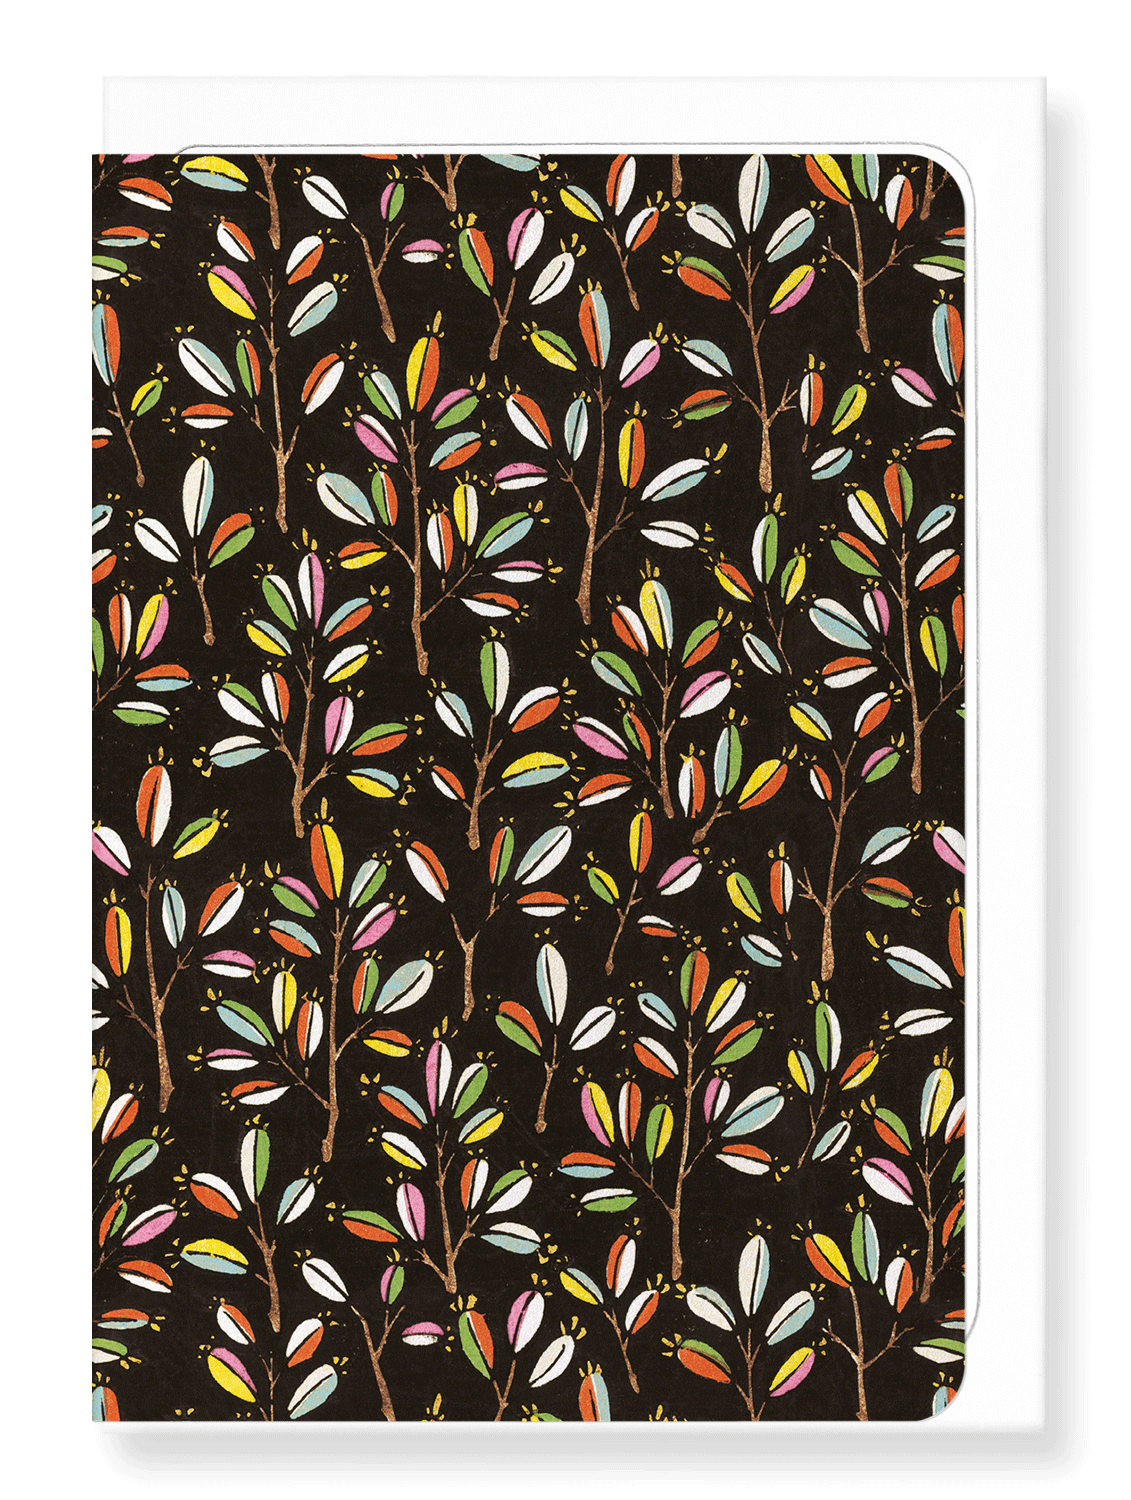 Ezen Designs - Colourful branches - Greeting Card - Front